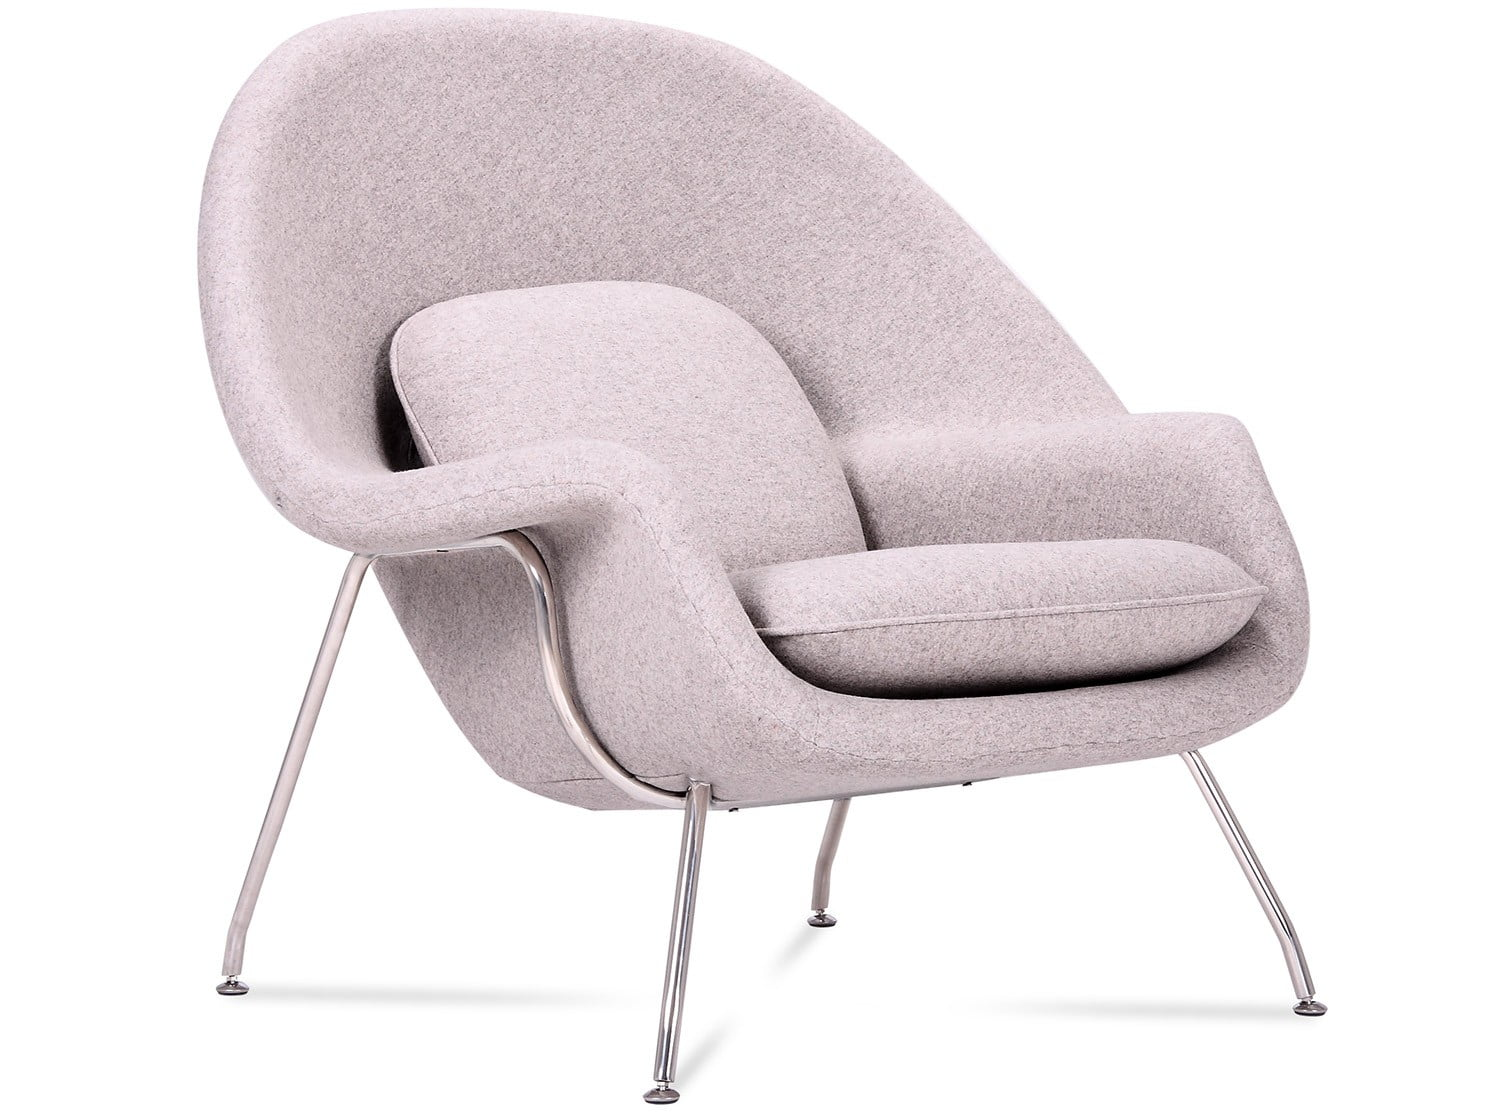 womb chair by eero saarinen from furnishplus